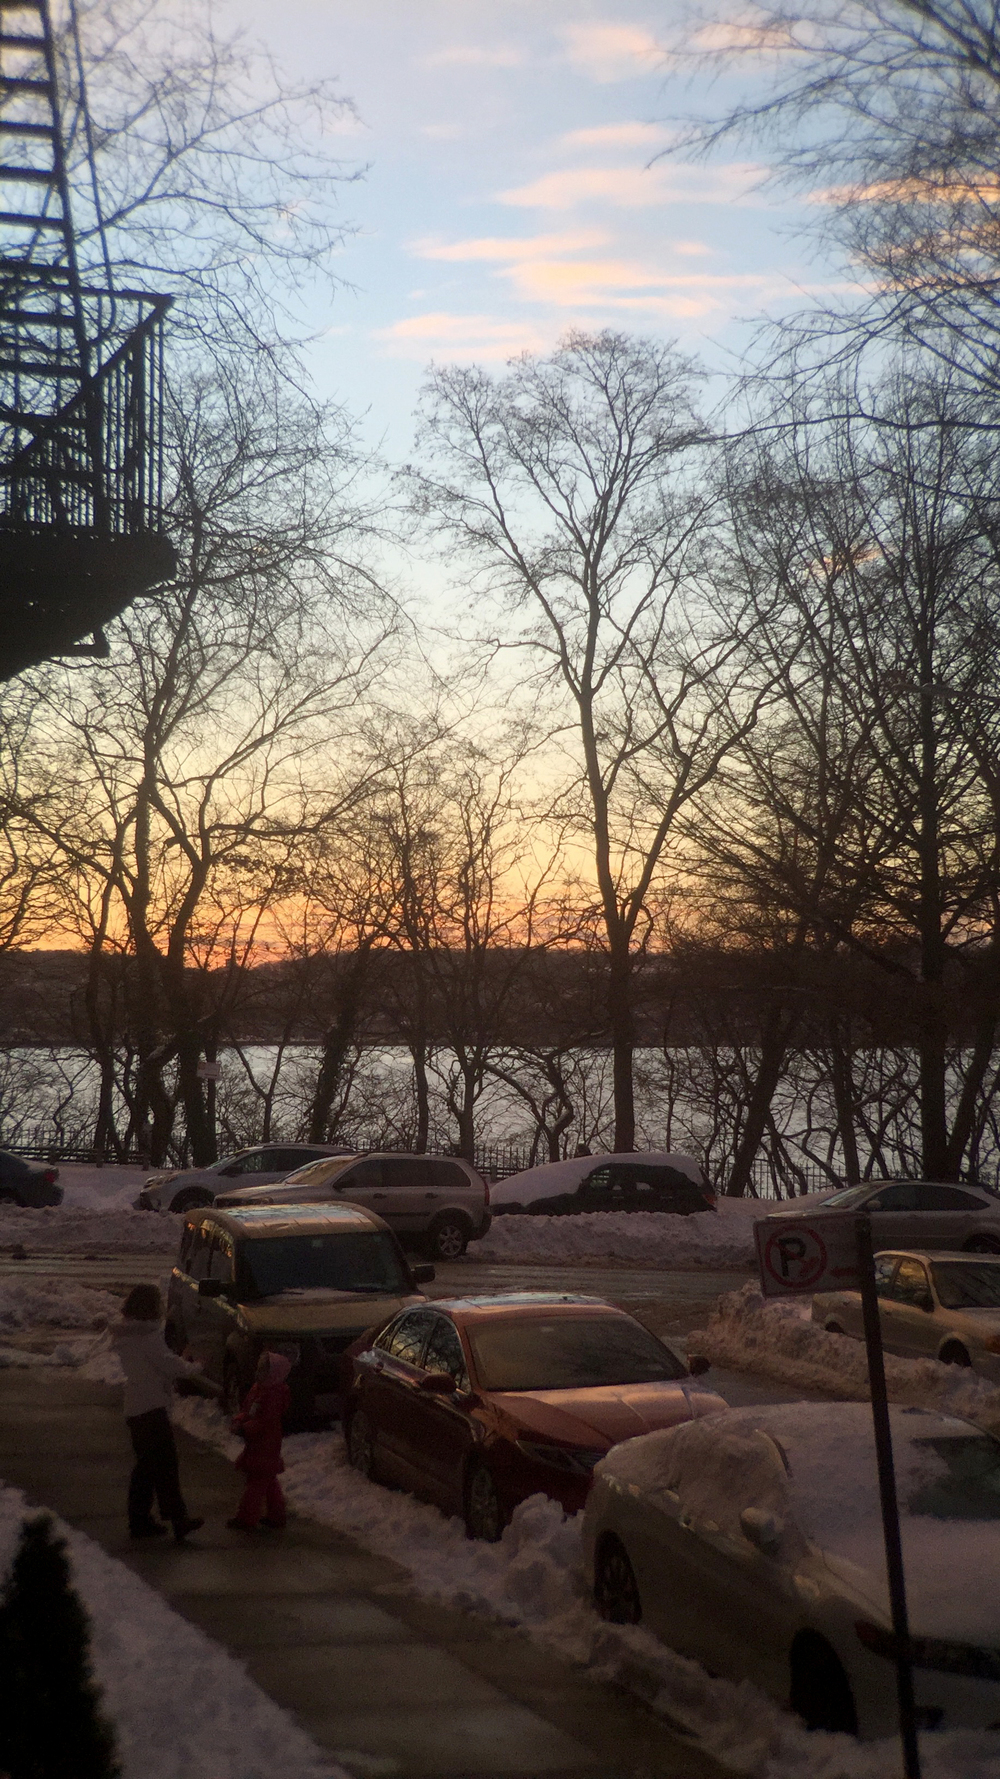 A painterly sunset along Shore Road and the Narrows in Fort Hamilton, Brooklyn - January 24, 2016